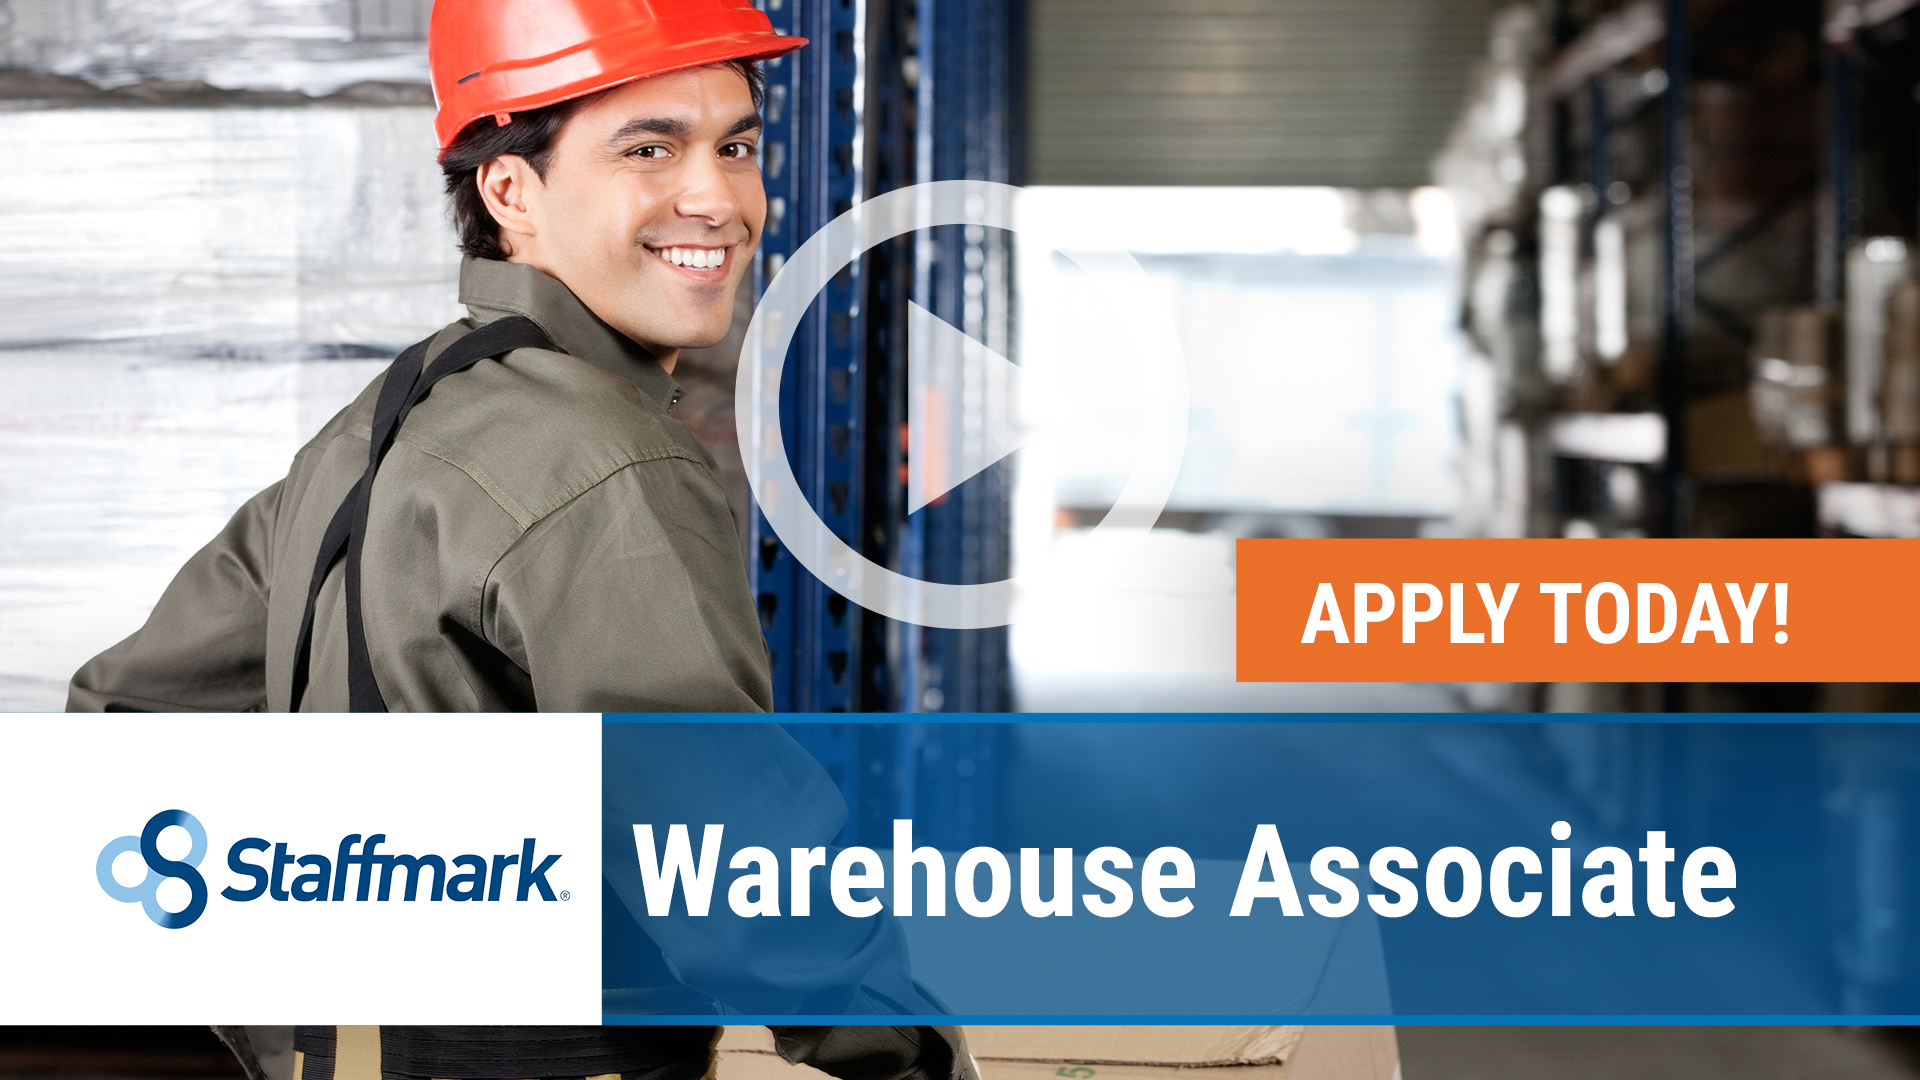 Watch our careers video for available job opening Warehouse Associate in Huber Heights, OH, USA